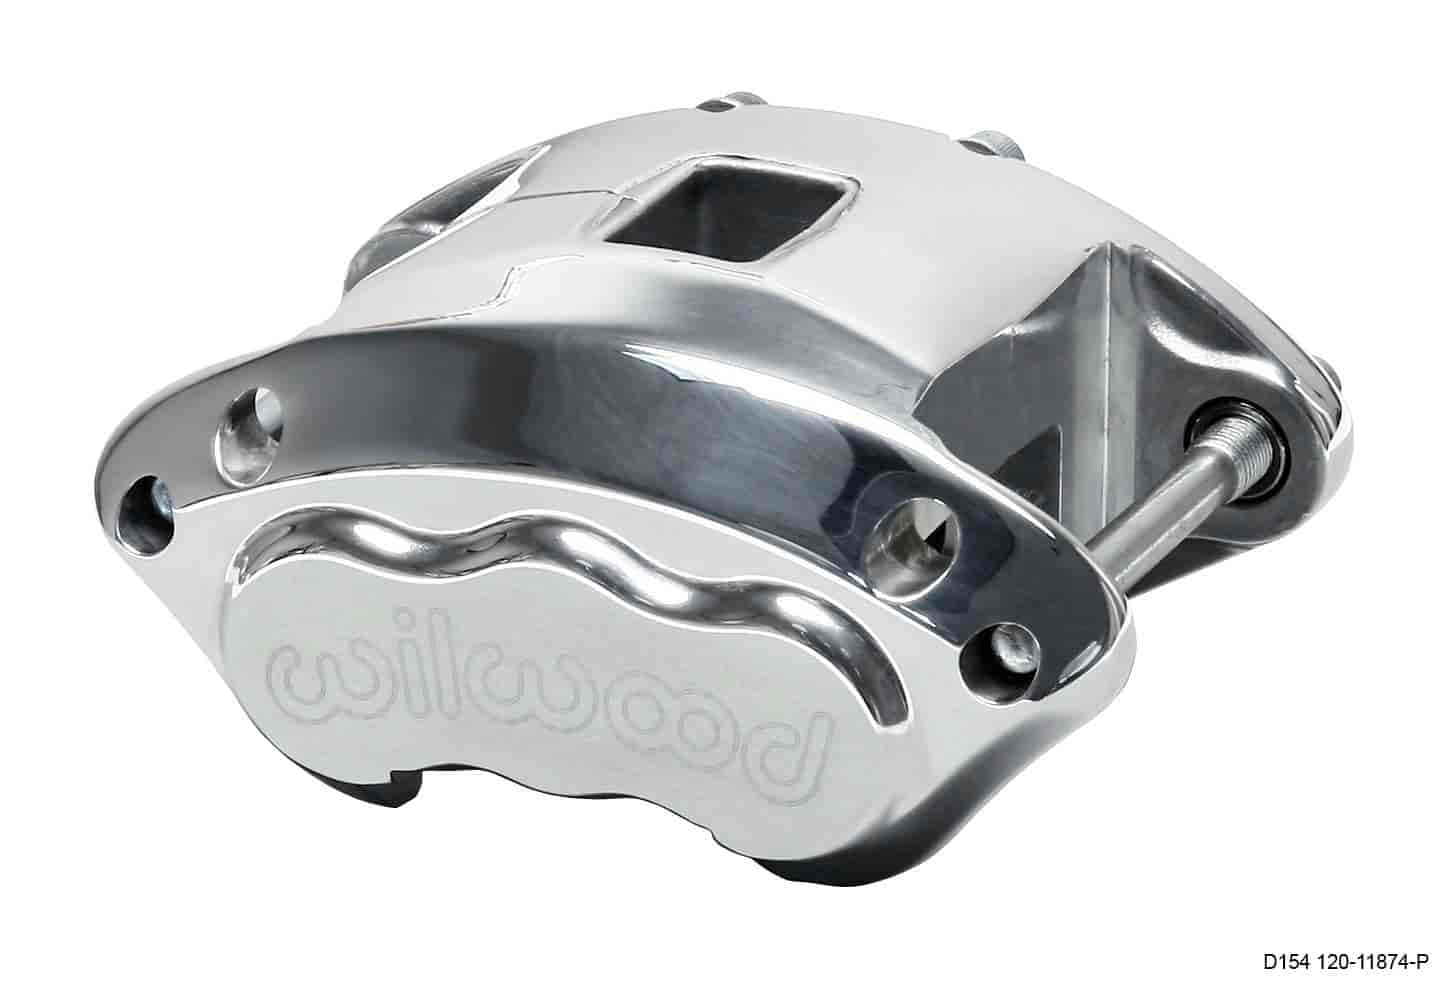 Wilwood 120-11874-P - Wilwood D154 Single & Dual Piston Floater Calipers